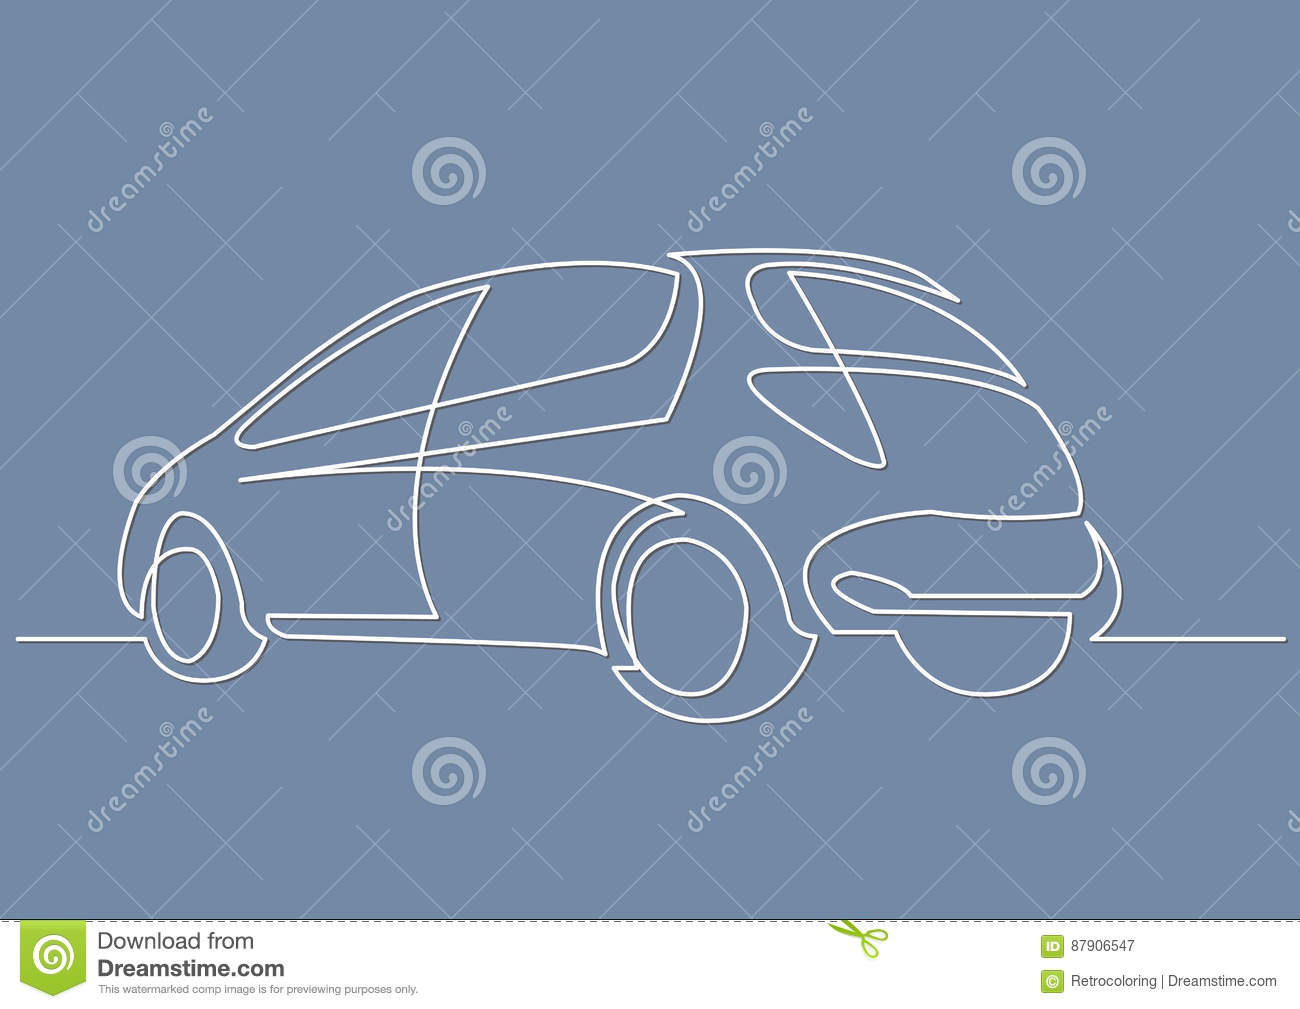 Continuous Line Drawing Of Hatchback Car Stock Vector - Illustration ...